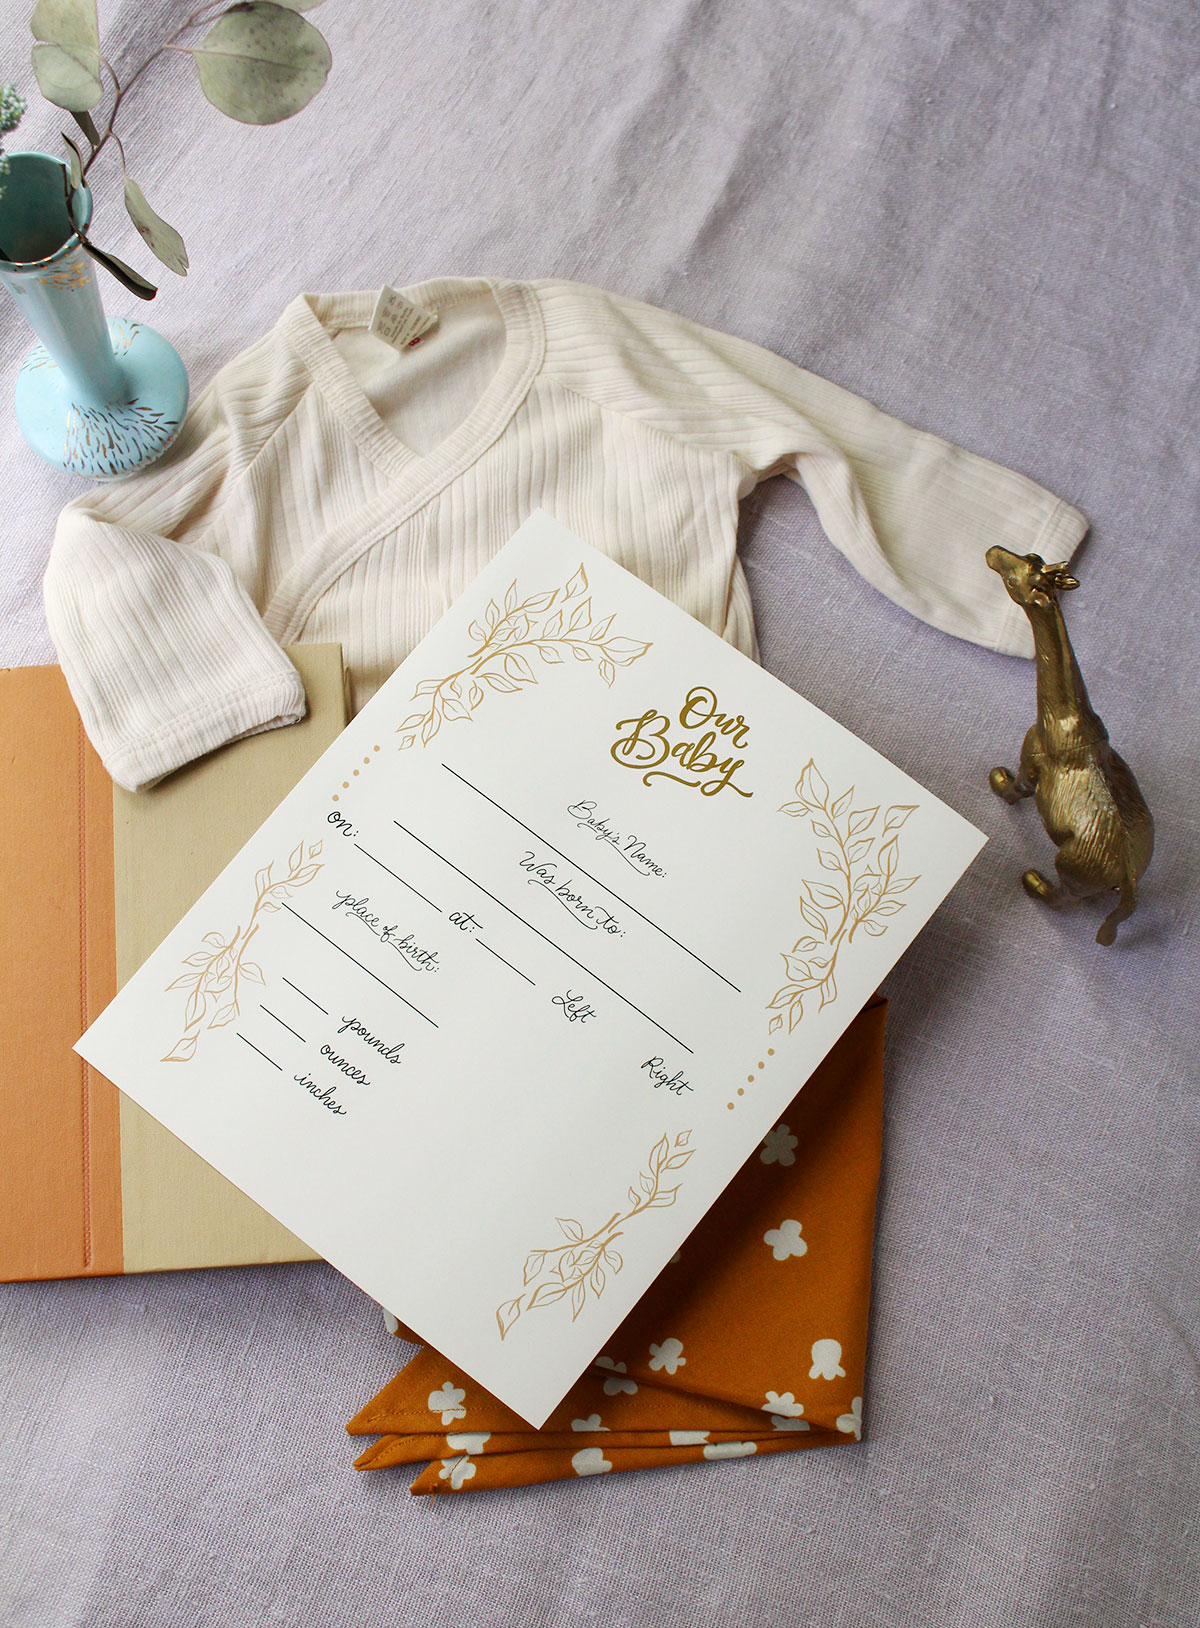 Fill in the blank birth stat prints are a cute way to create a custom piece of nursery art and a family heirloom